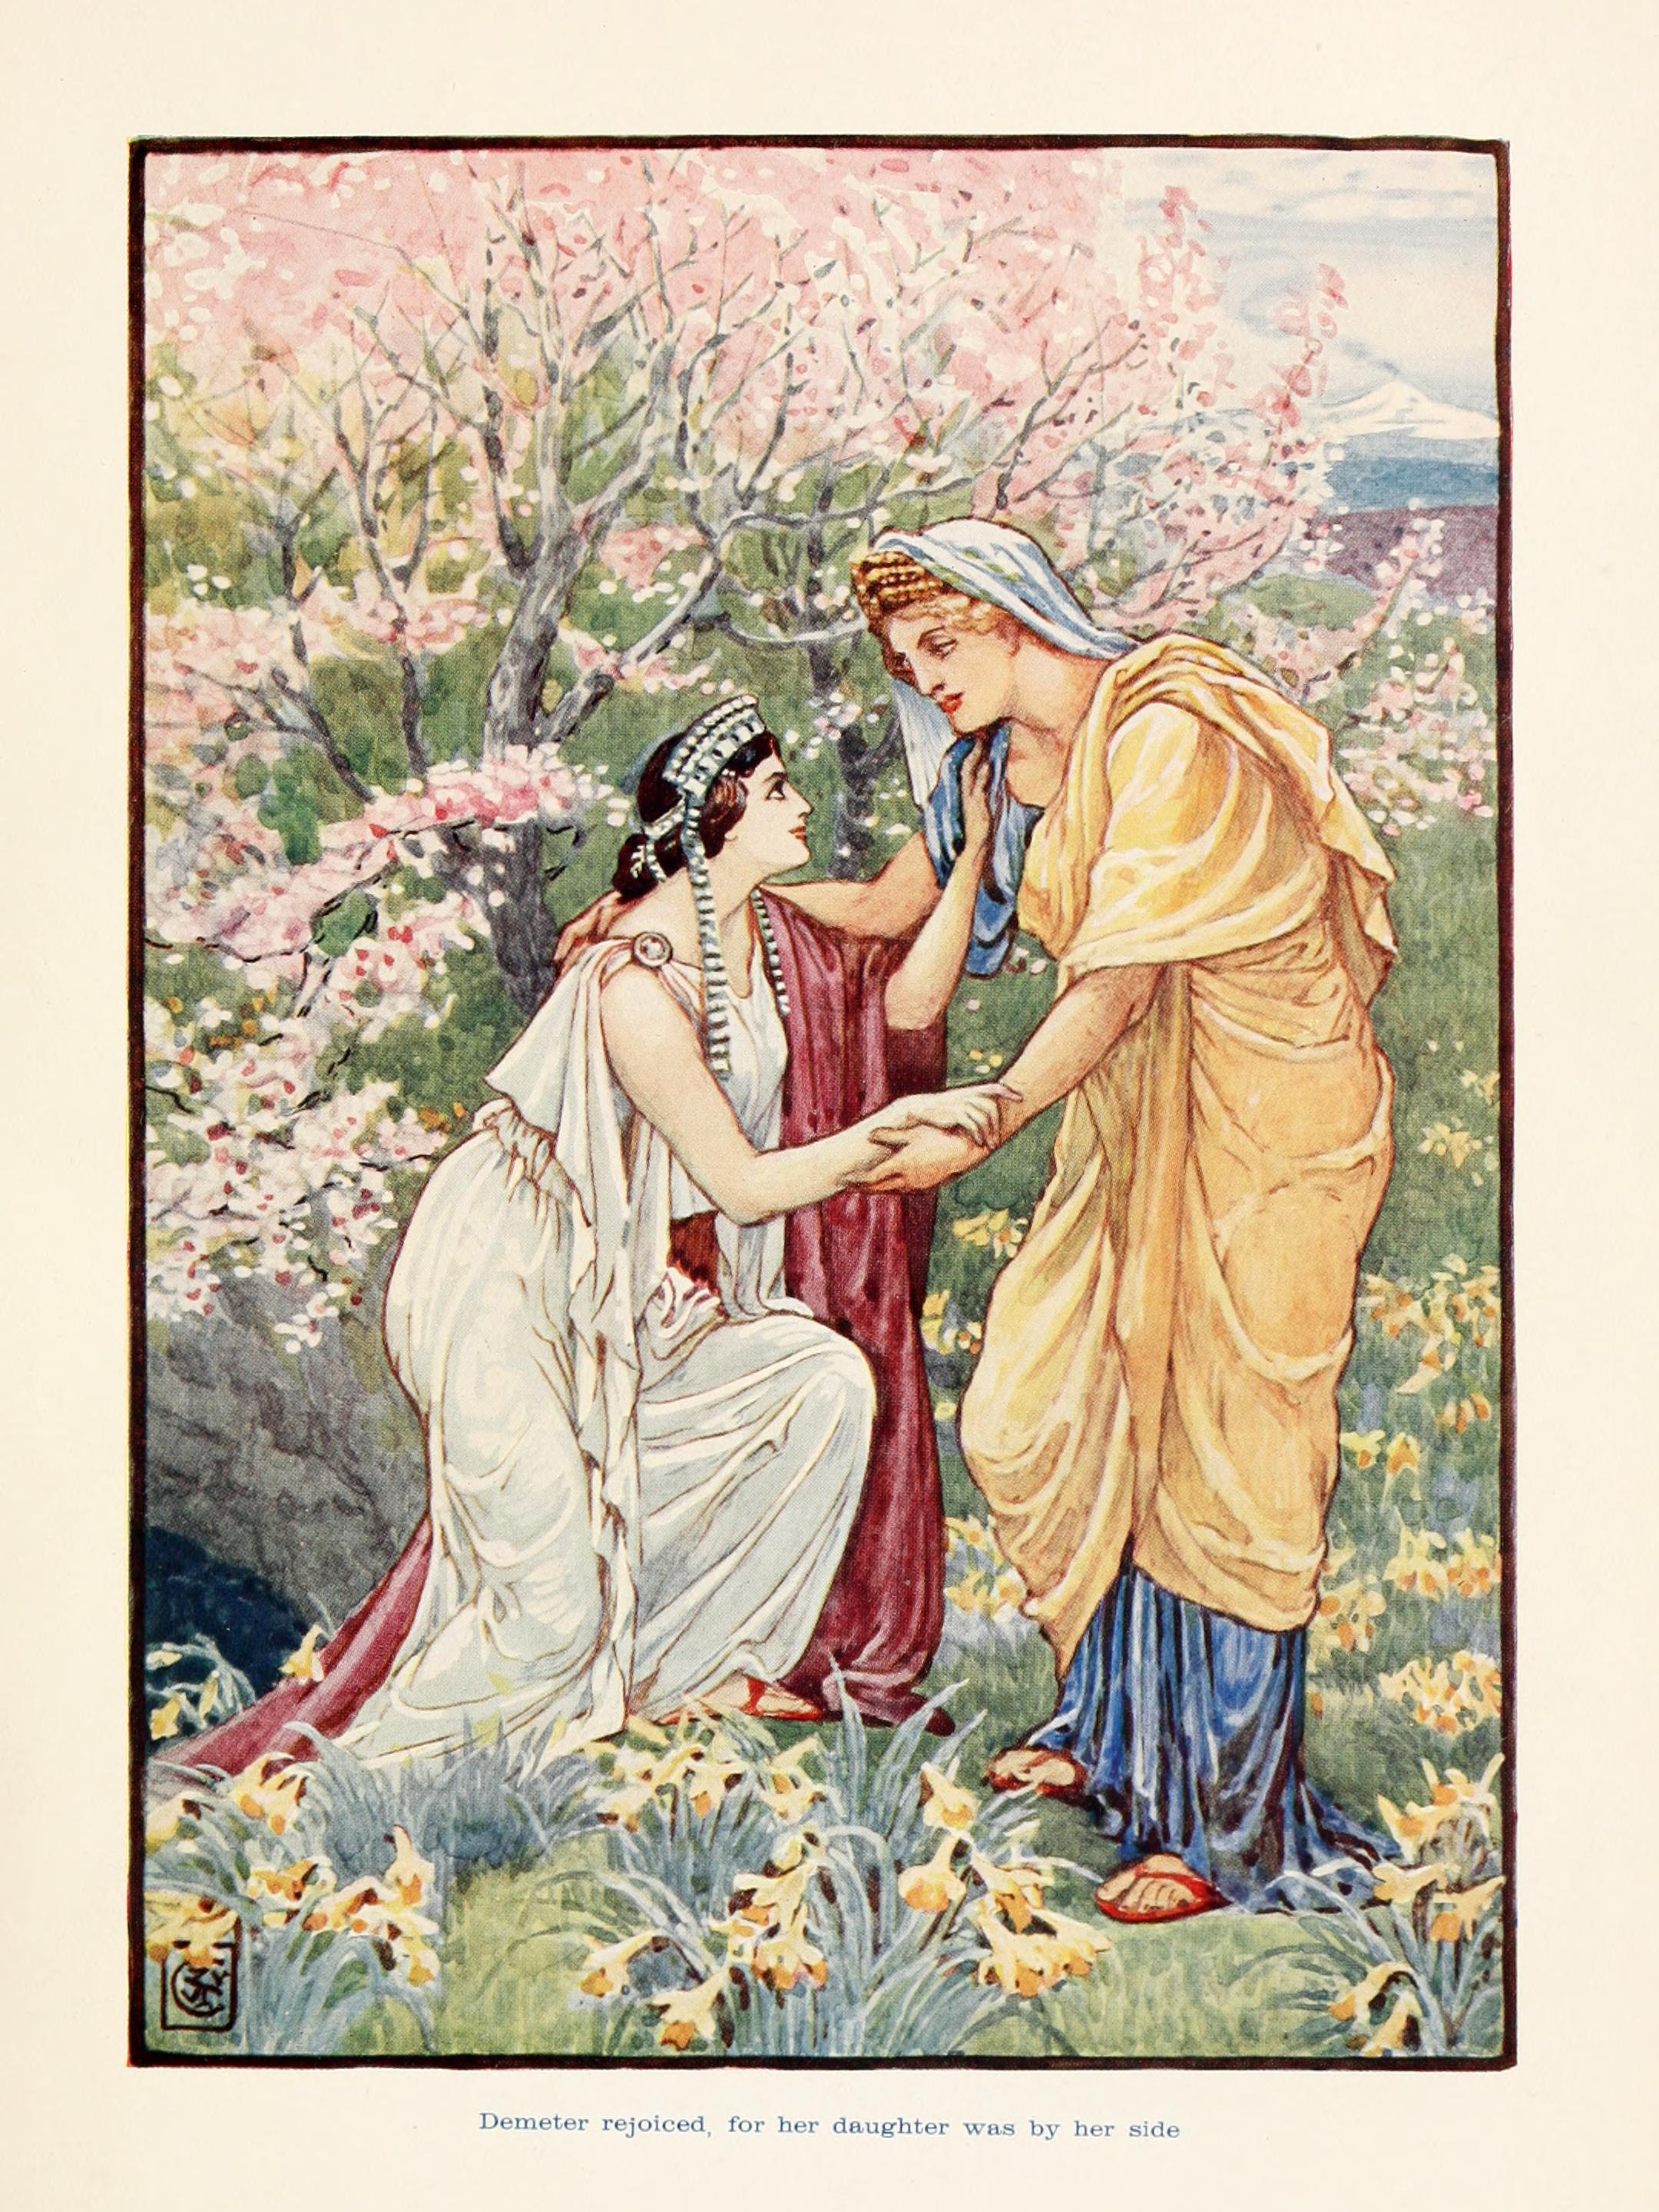 An image of Demeter and Persephone.